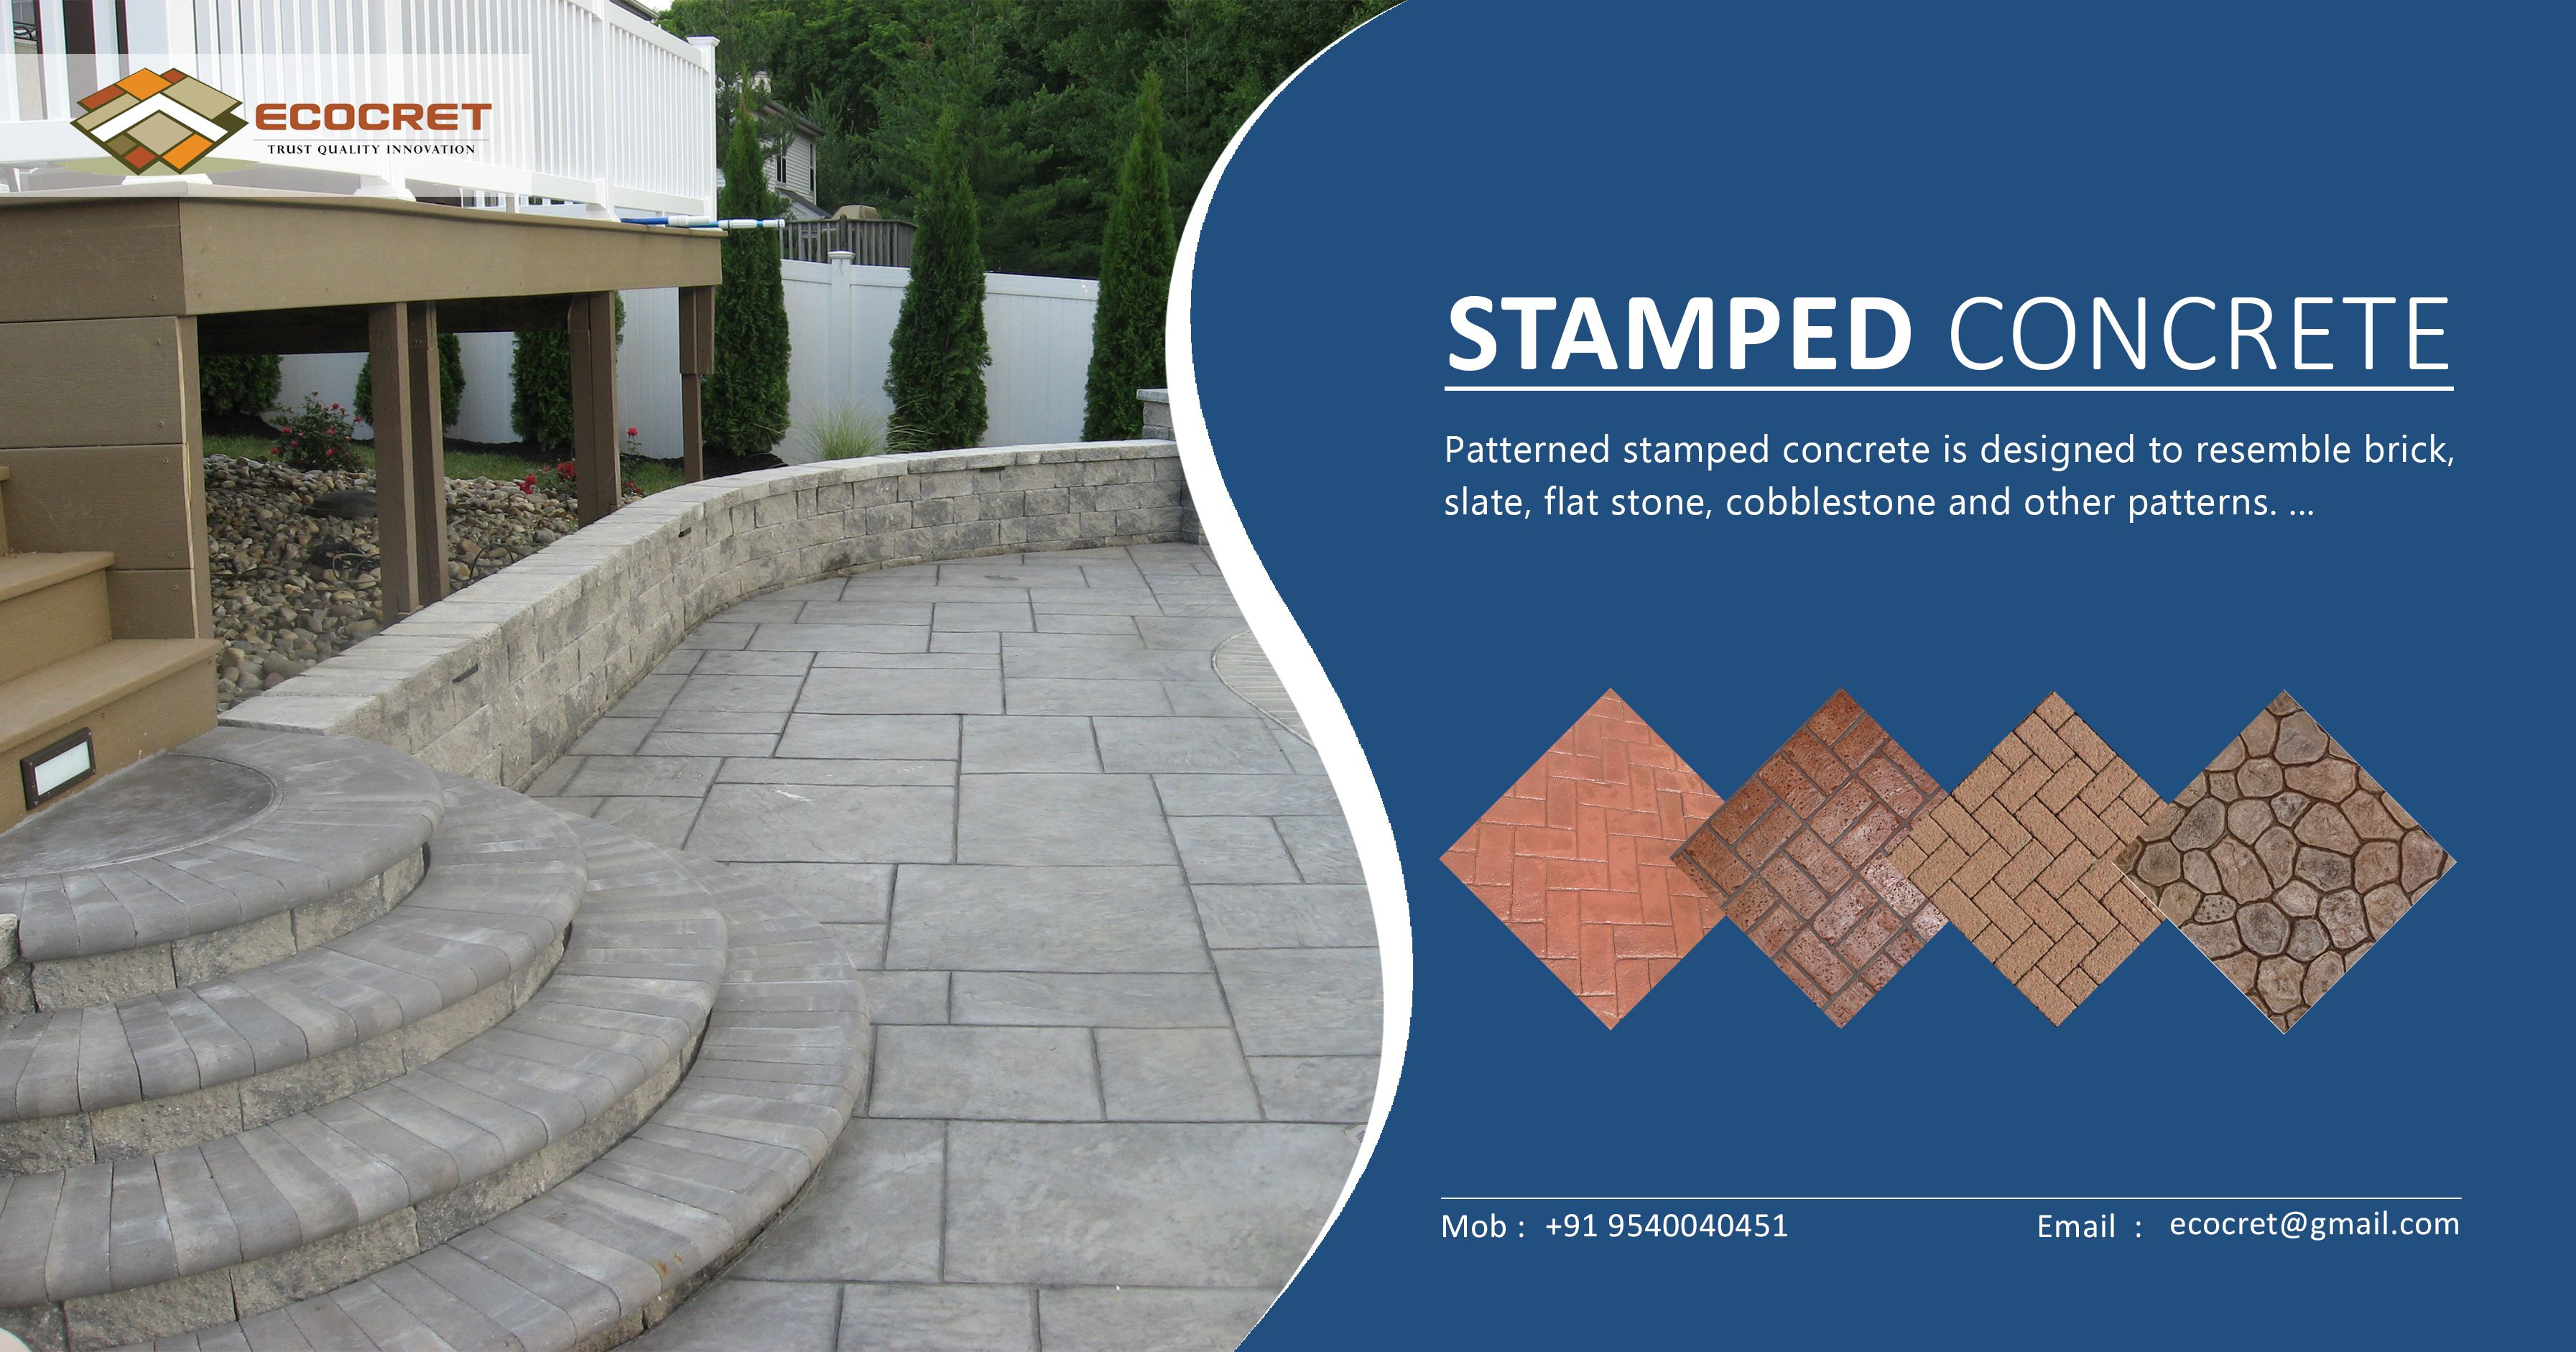 Ecocret Offers A Wide Range Of Stamped Concrete Textured Concrete According To Your Needs At Affordable Price In Stamped Concrete Concrete Floors Concrete